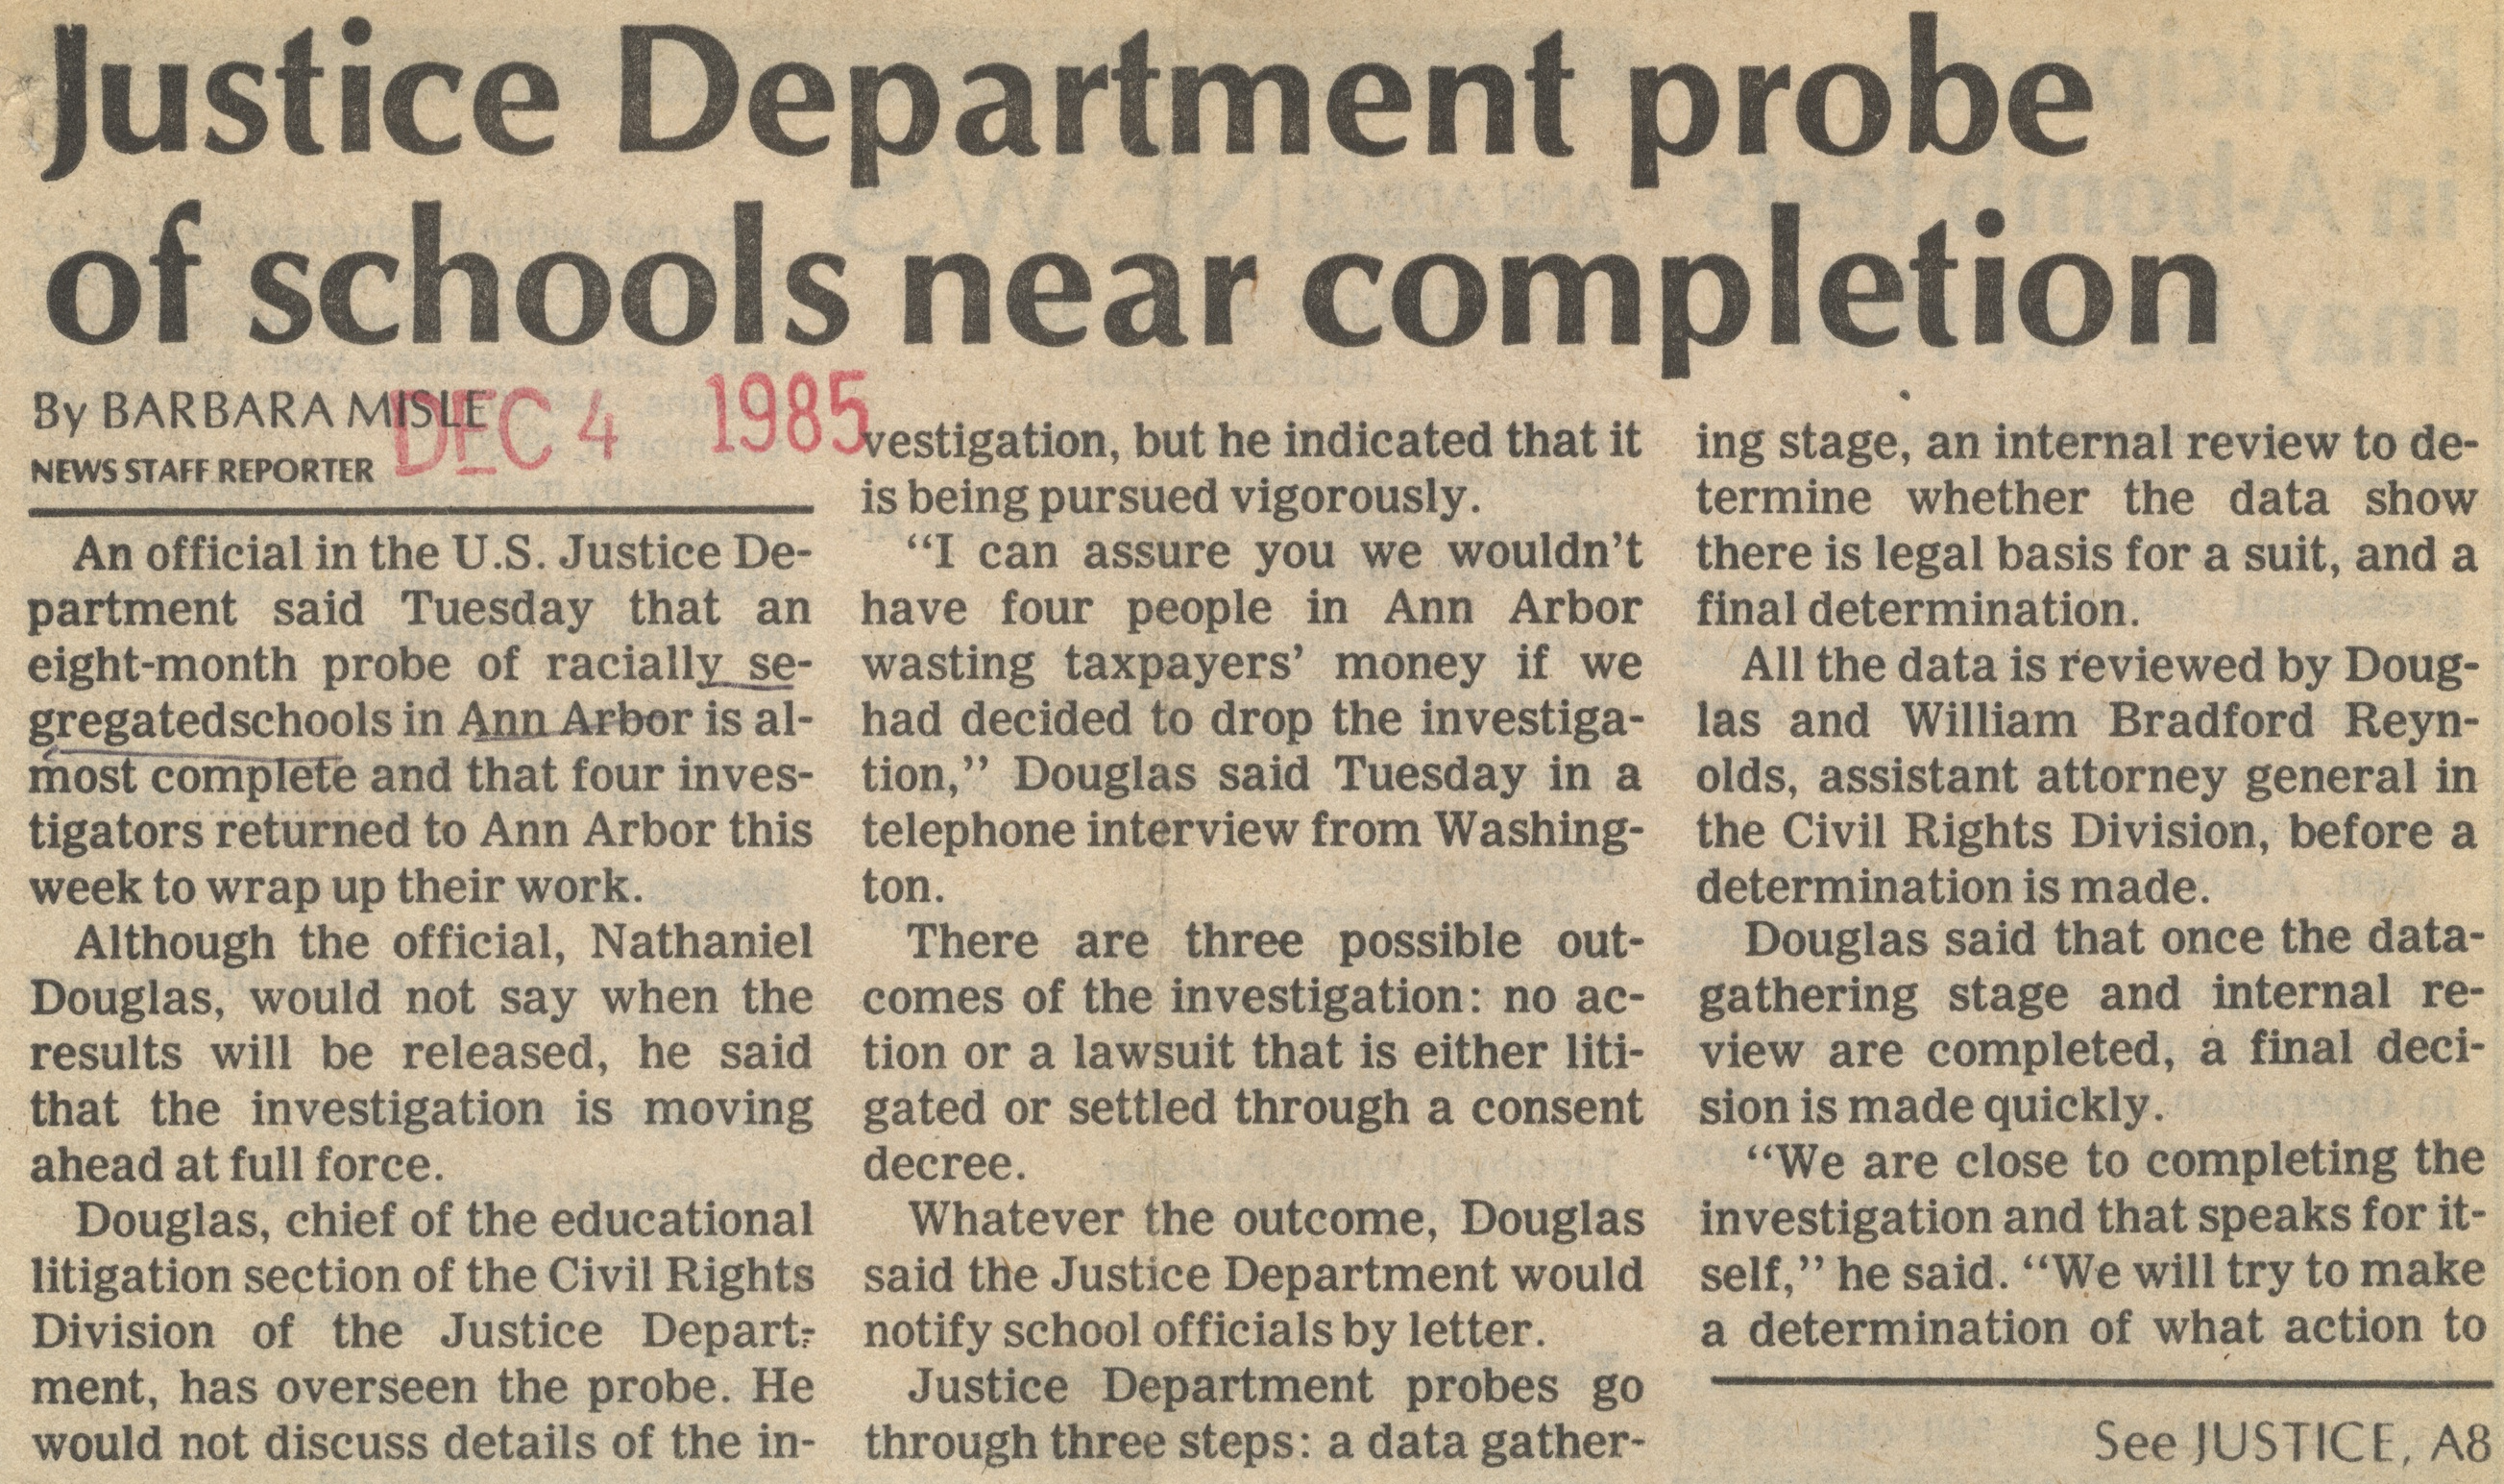 Justice Department Probe Of Schools Near Completion image